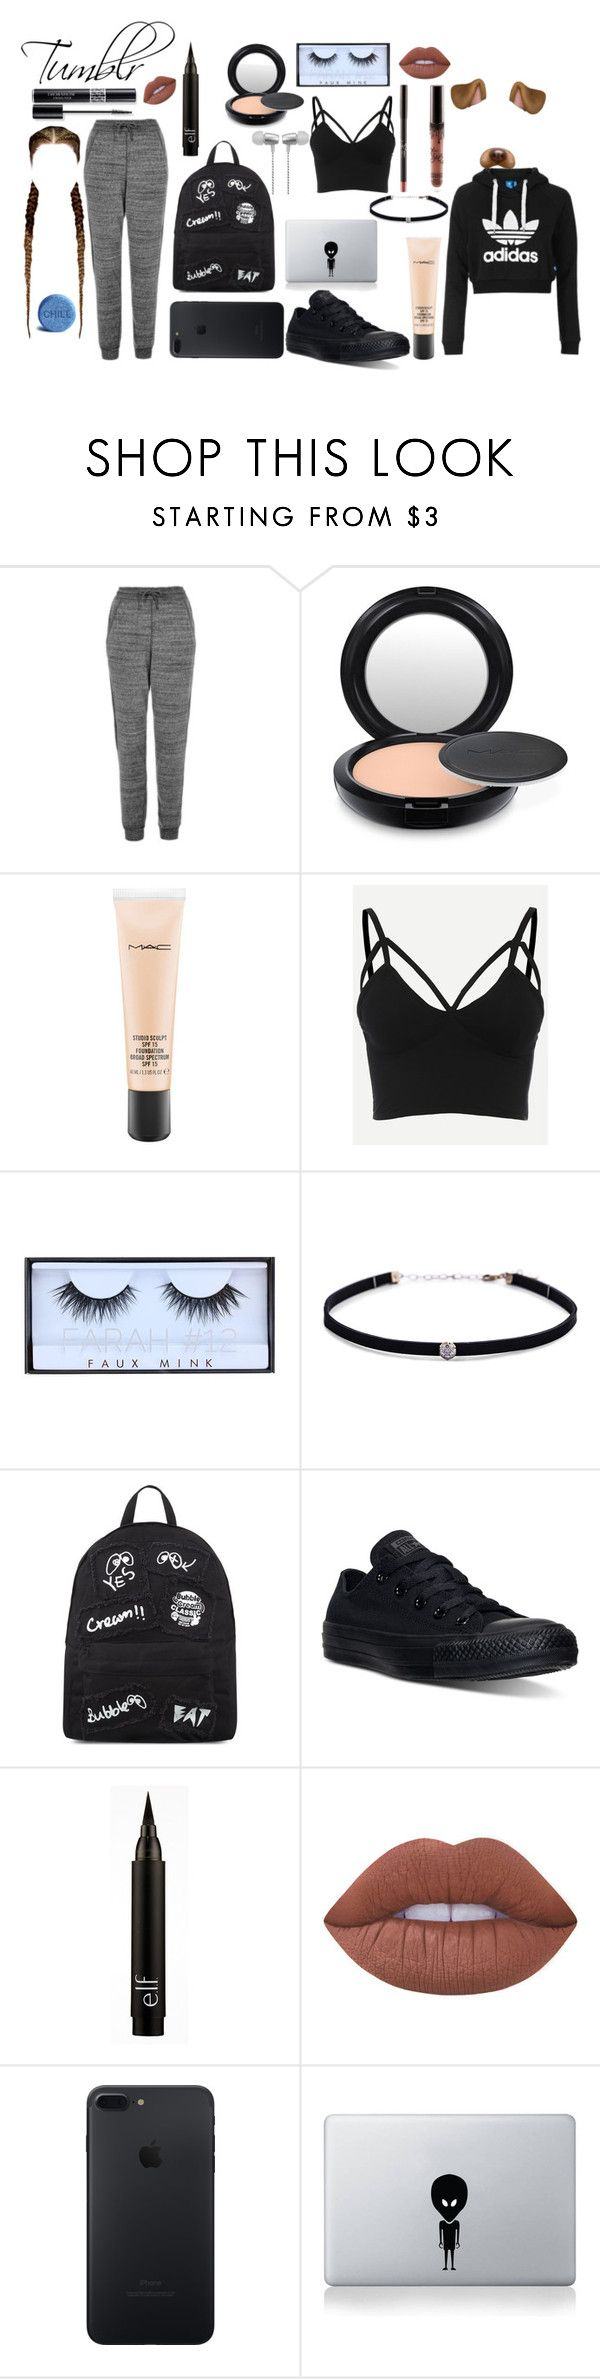 """""""Tumblr"""" by polyvore-outfits909 ❤ liked on Polyvore featuring adidas Originals, Topshop, MAC Cosmetics, Christian Dior, Huda Beauty, Carbon & Hyde, Mini Cream, Converse, Lime Crime and Vinyl Revolution"""